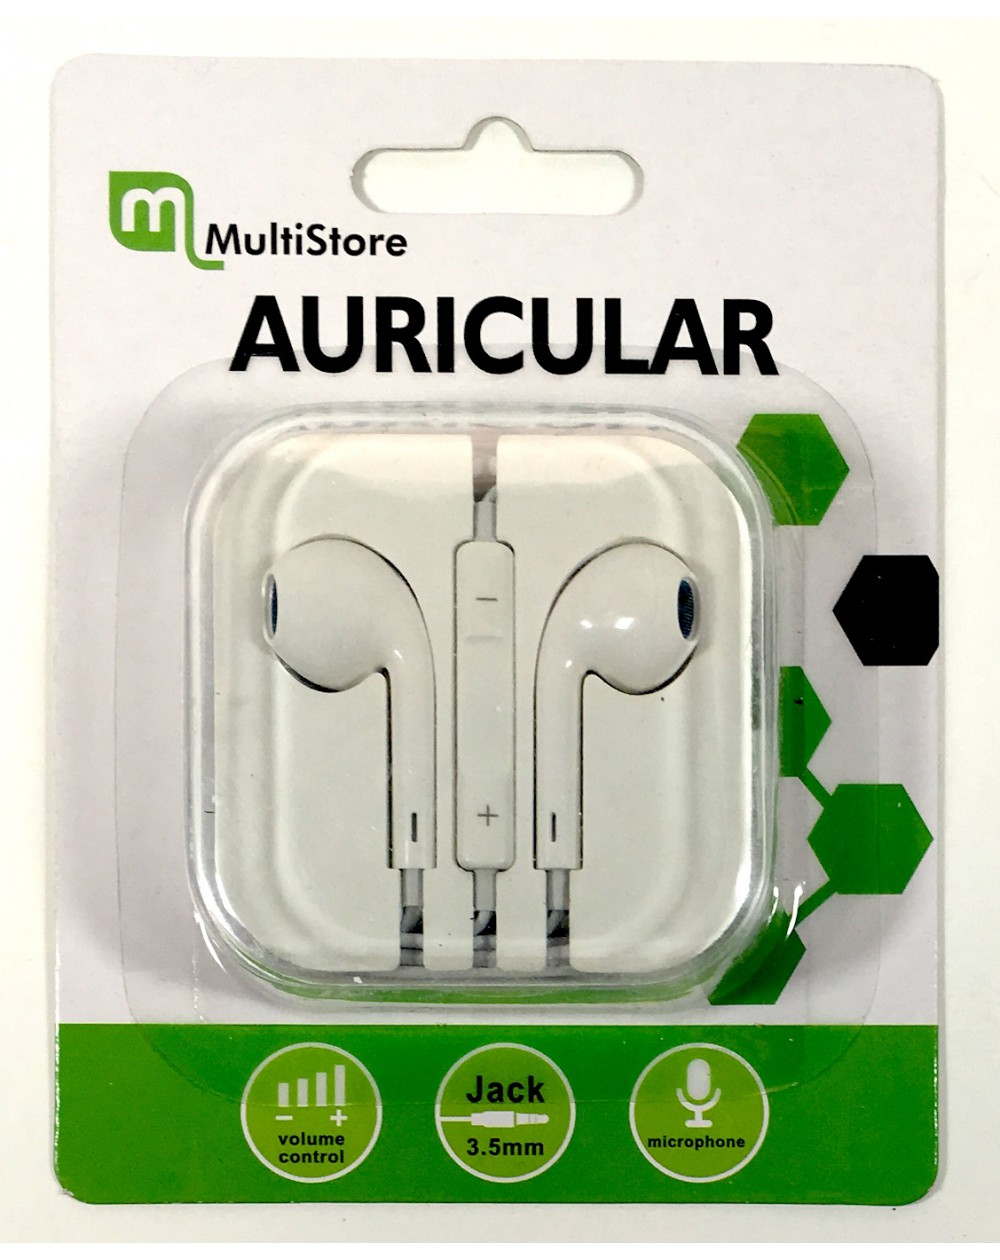 baa09027899 Auricular manos libres iPhone